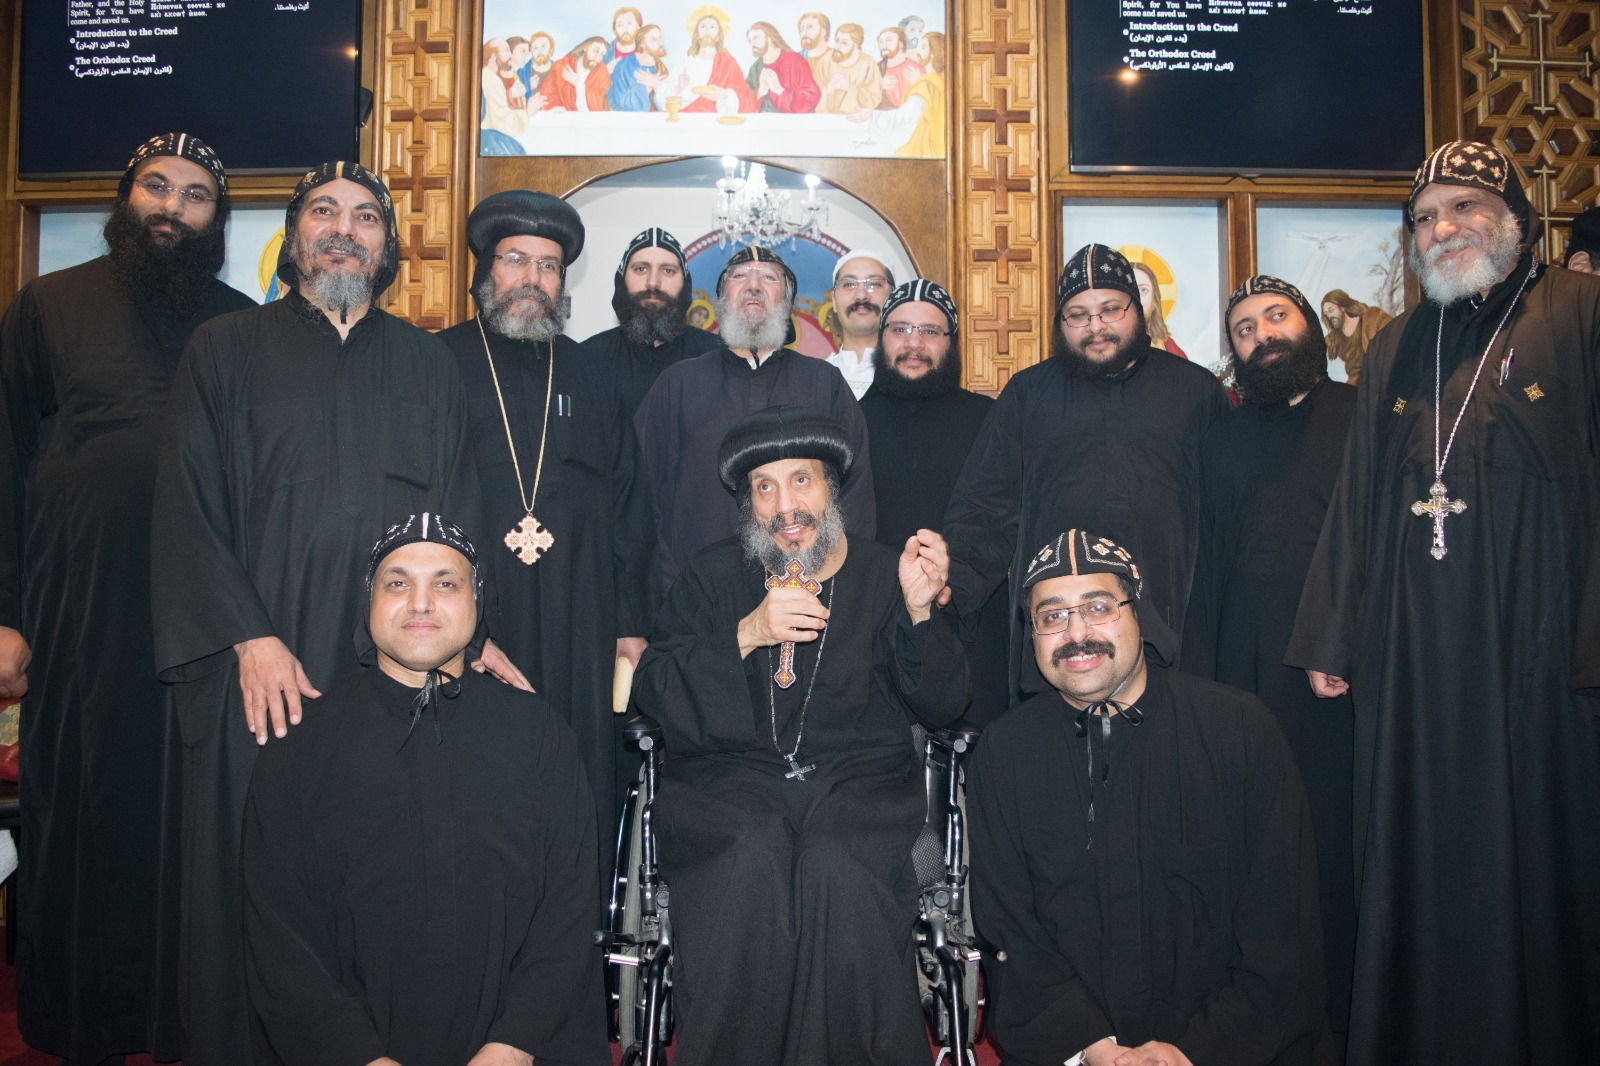 The-ordination-of-two-monks-at-St-Athanasius-Monastery07